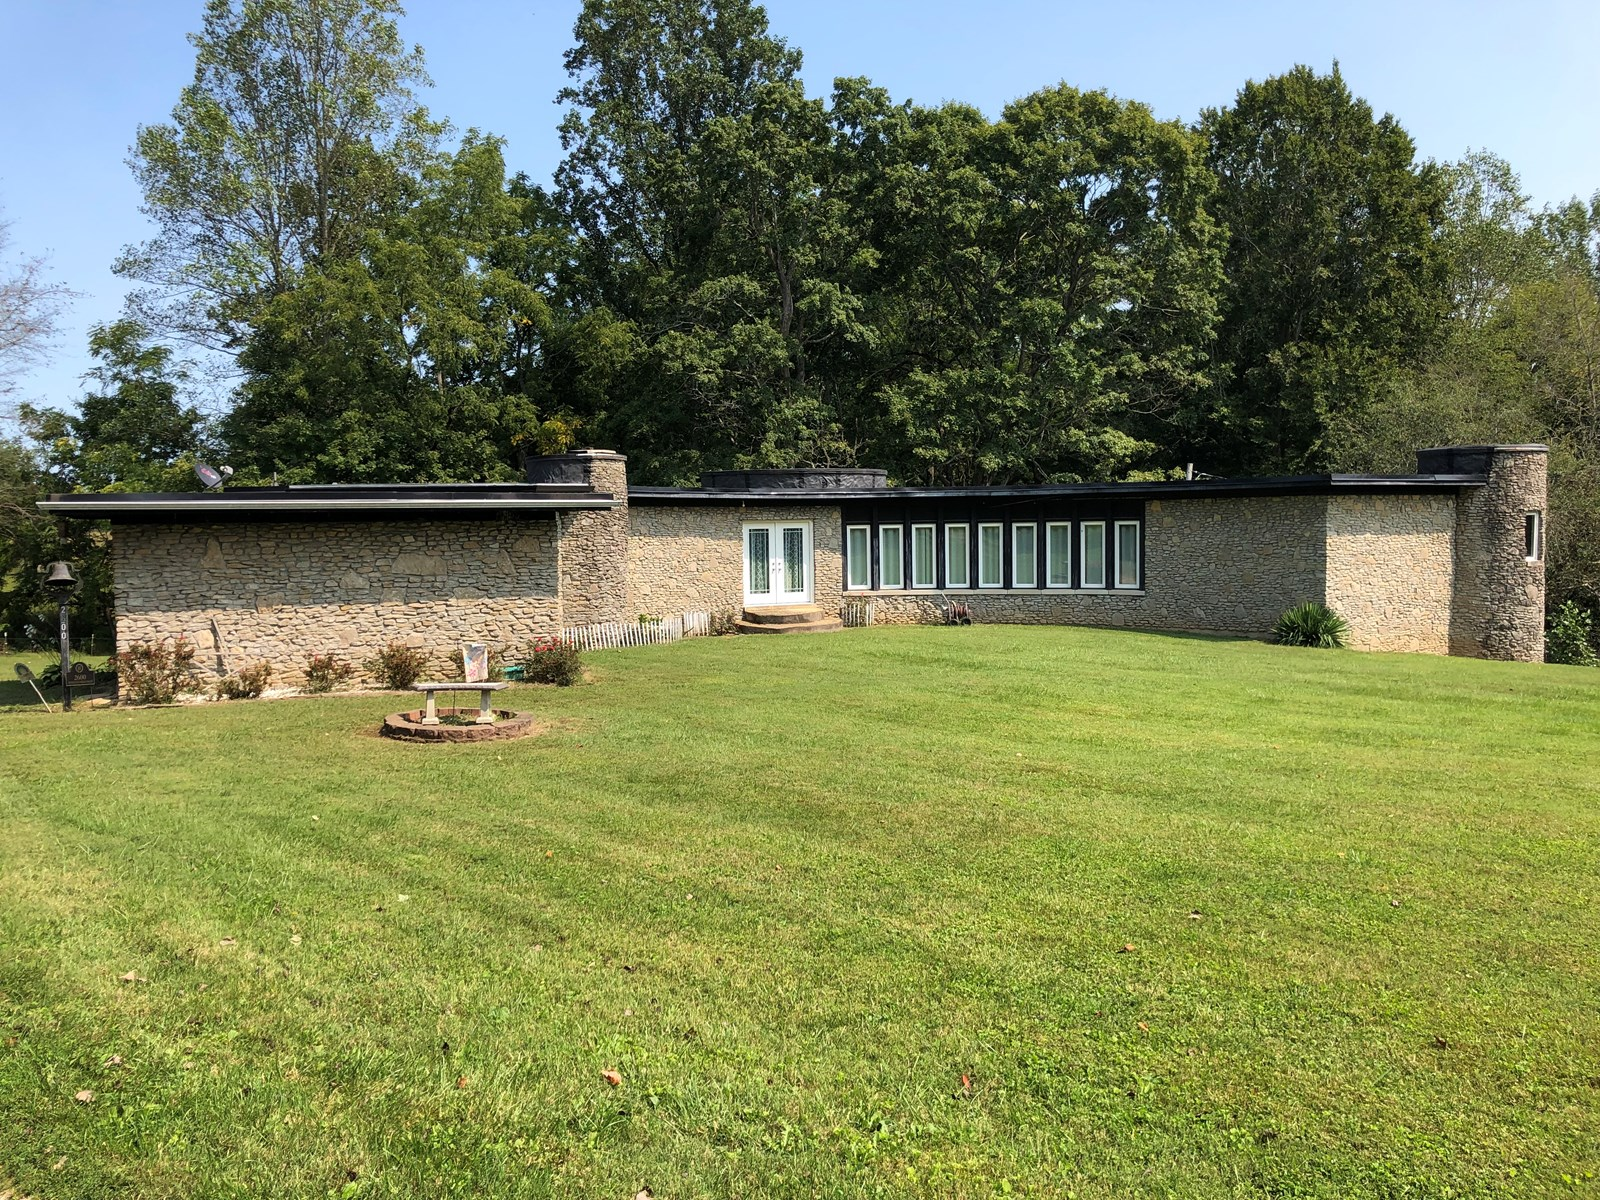 Country home for sale in Kentucky on over 5 acres of land